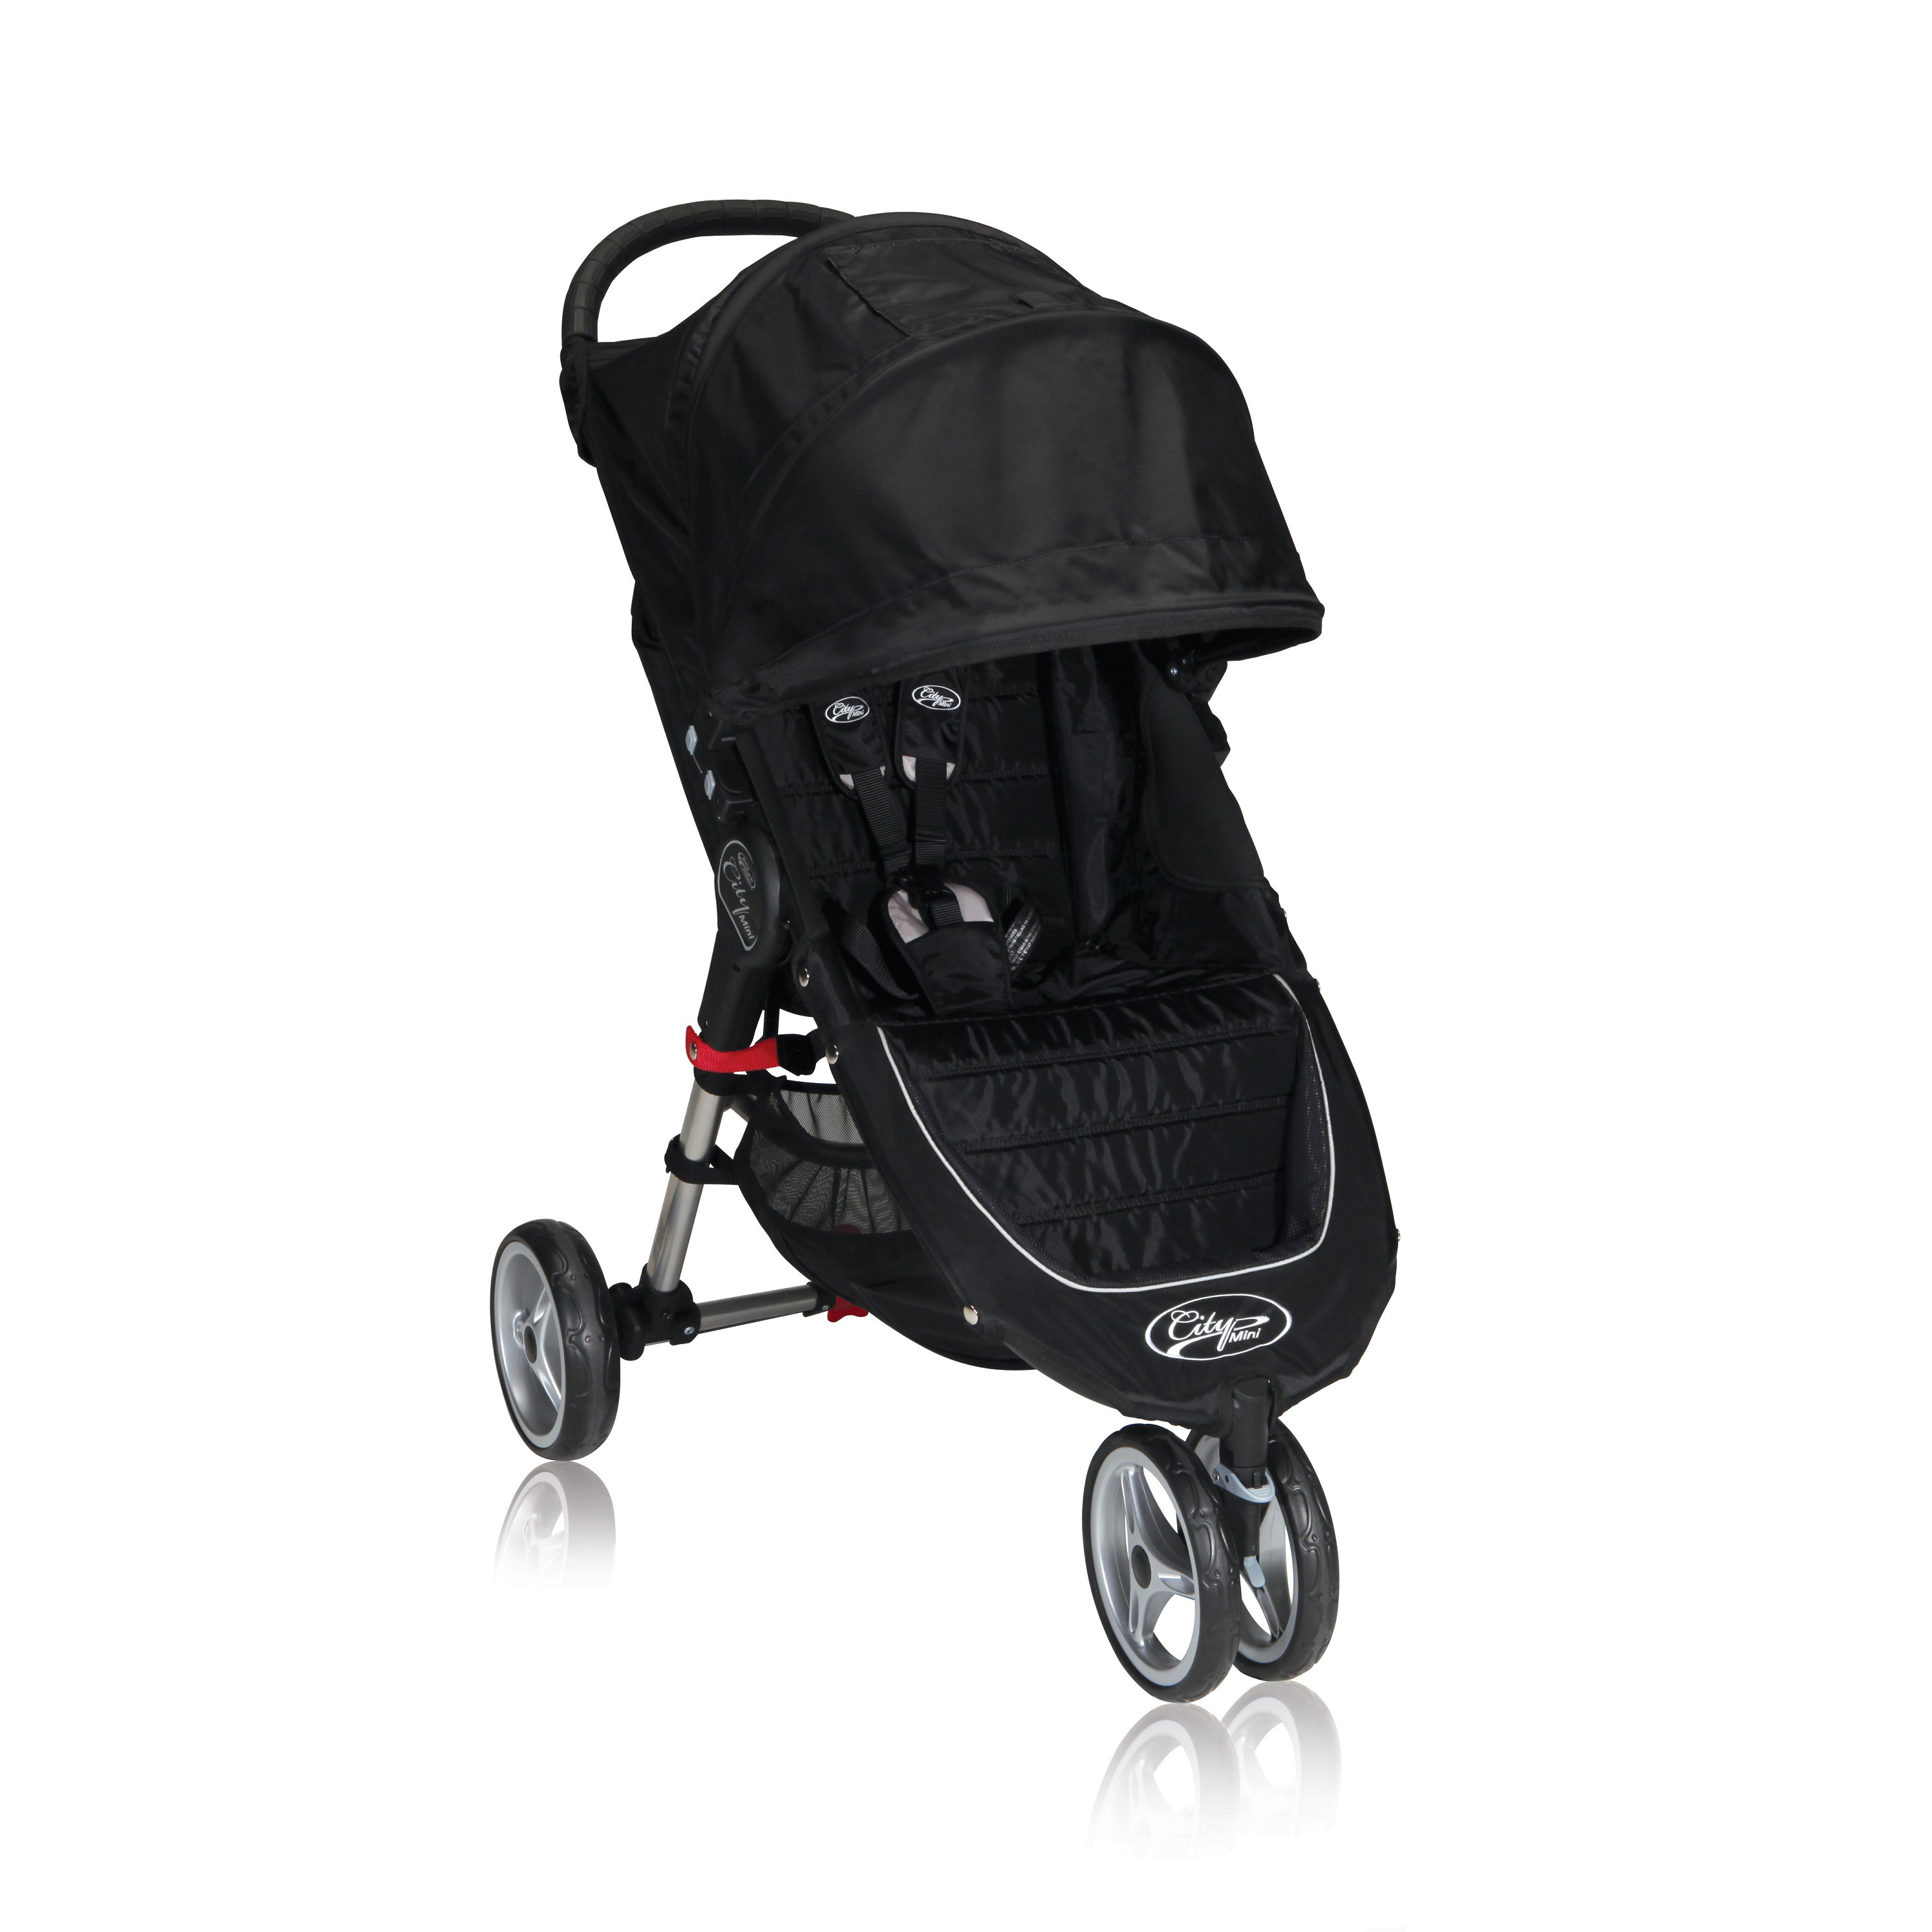 Jogger City Mini Lightweight Easy Fold Stroller Black/Gray